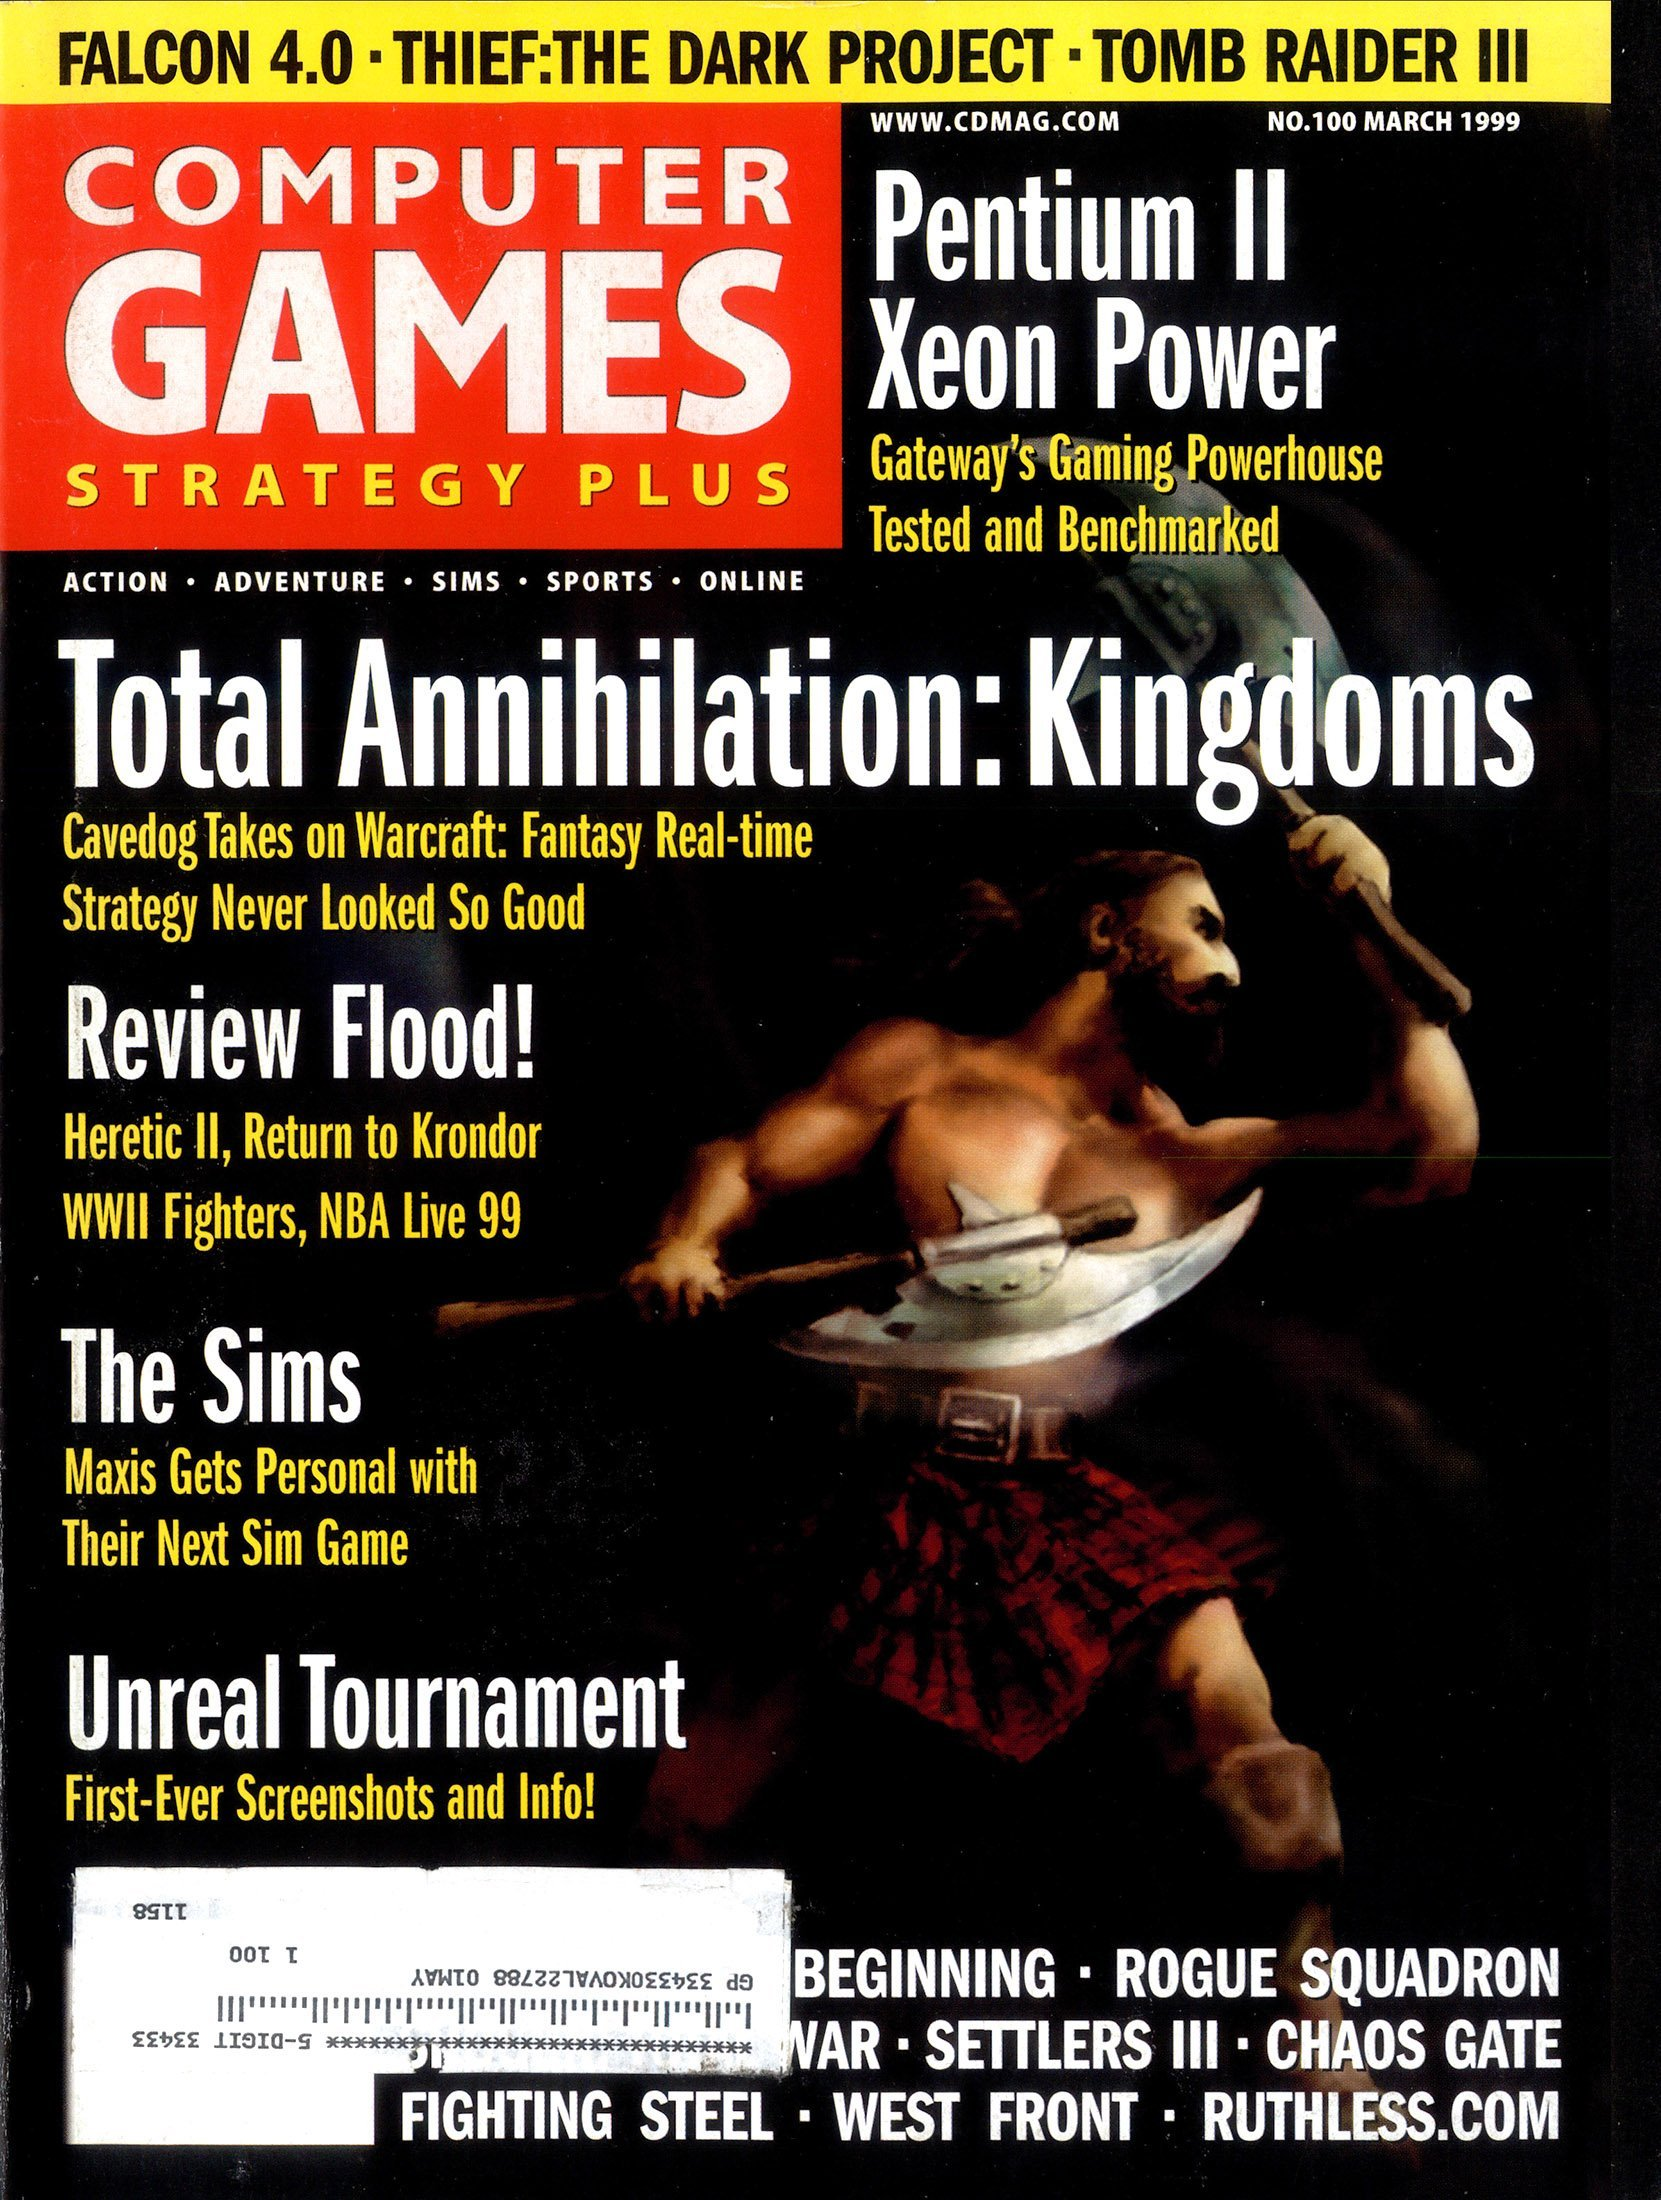 Computer Games Strategy Plus Issue 100 (March 1999)